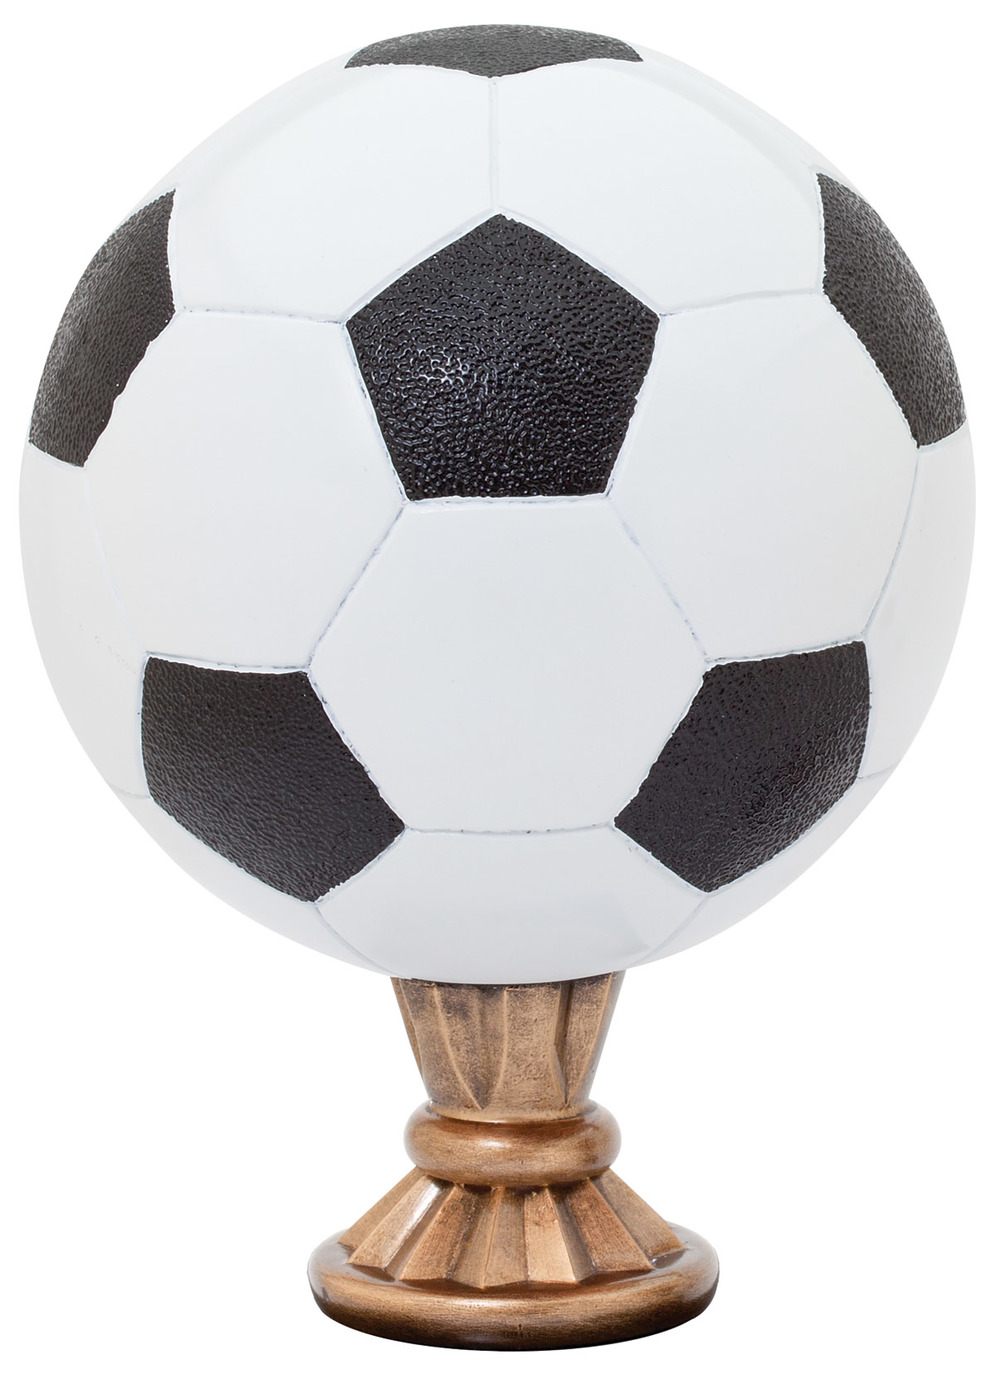 "Soccer   RG3013 - 11.5"" tall  Price = $81"